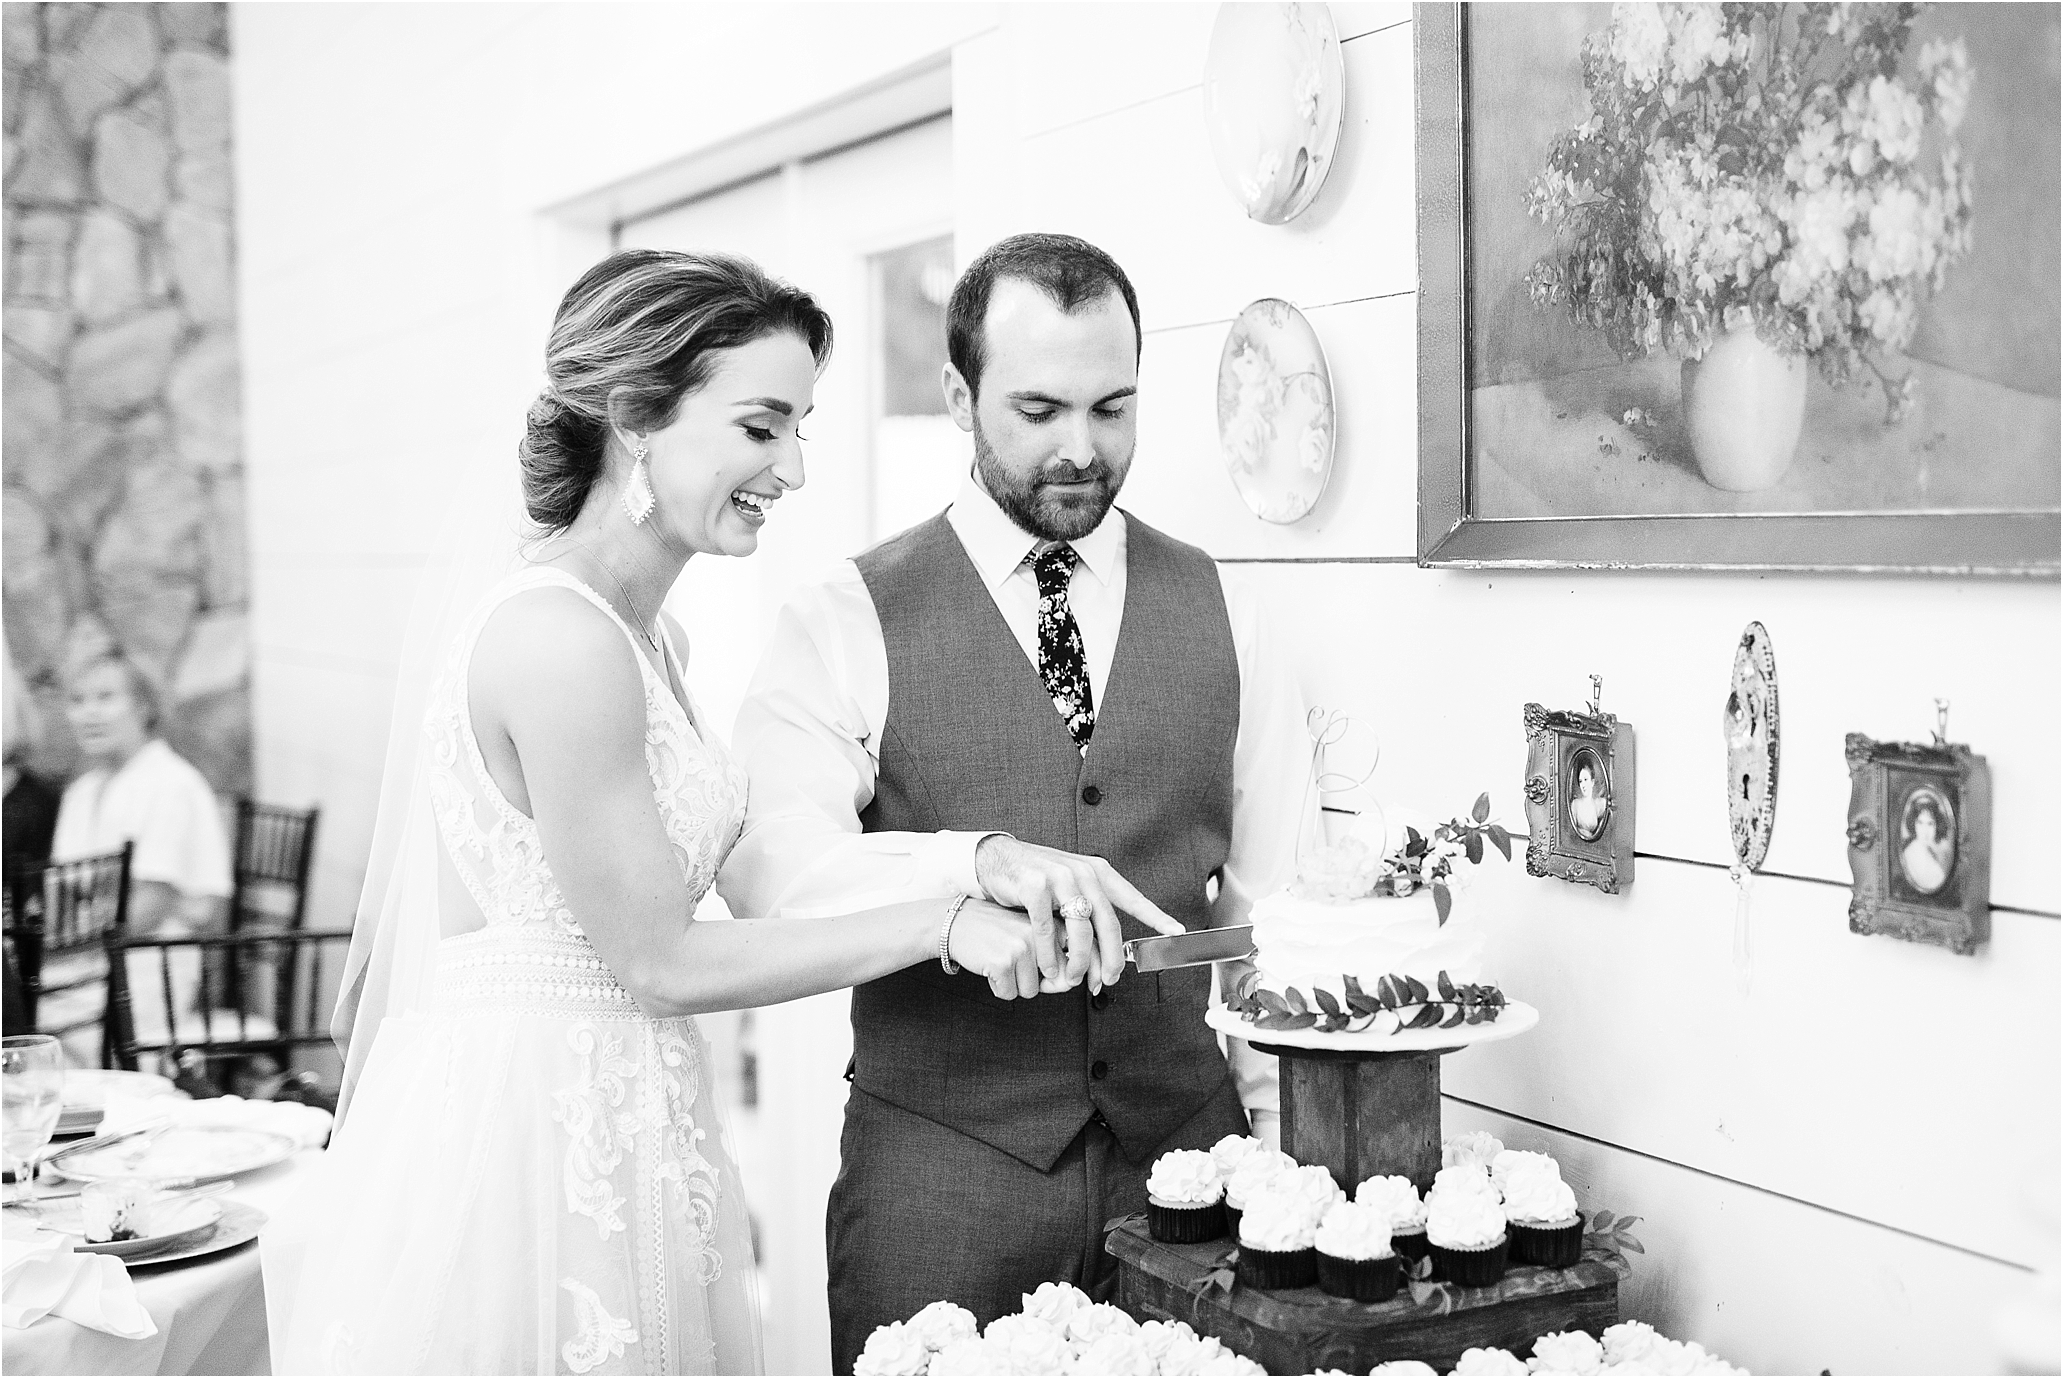 PattisonHouse_TexasWeddingPhotographer_CarlyCrockett&MattBrownWedding_0125.jpg